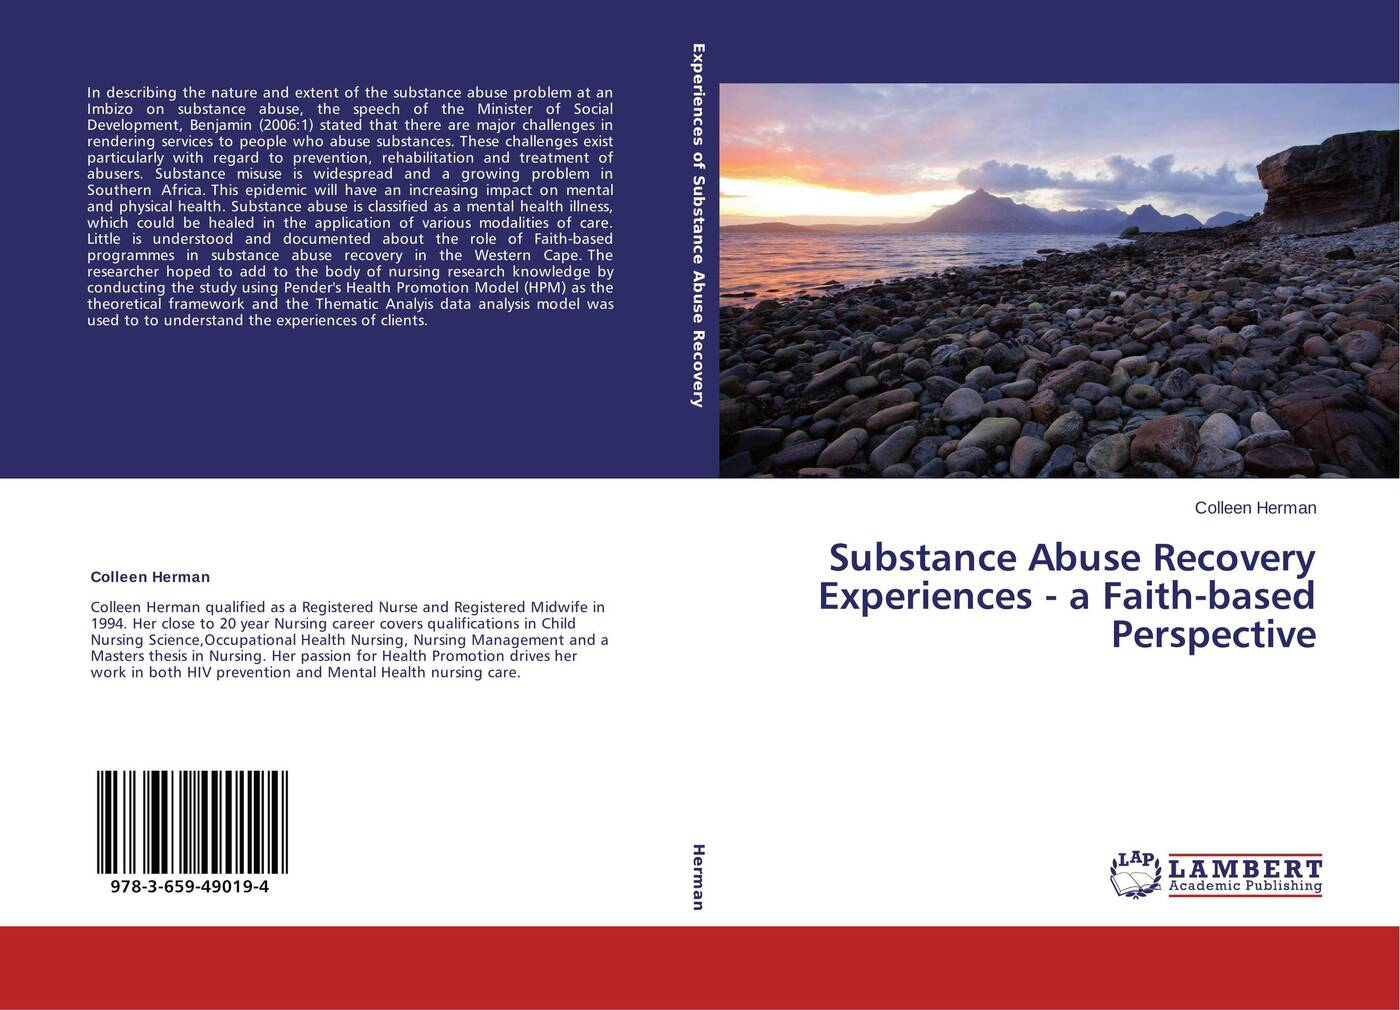 Colleen Herman Substance Abuse Recovery Experiences - a Faith-based Perspective maeve wallace irish students views on school substance abuse prevention programme